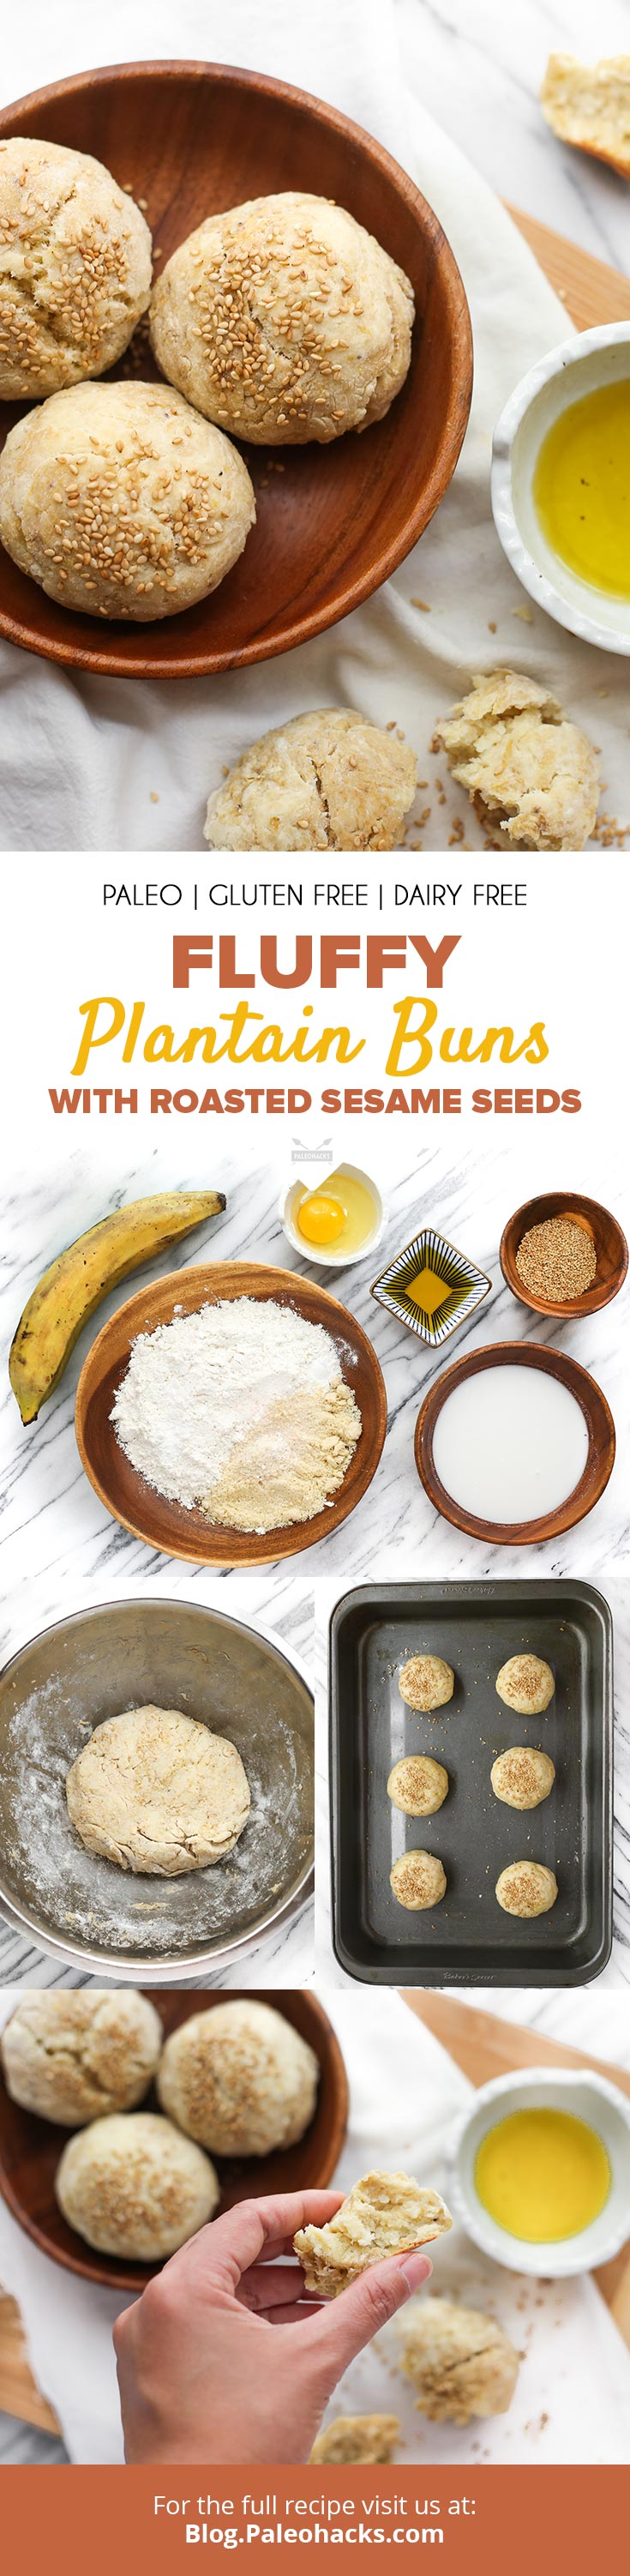 PIN-Fluffy-Plantain-Buns-with-Roasted-Sesame-Seeds.jpg